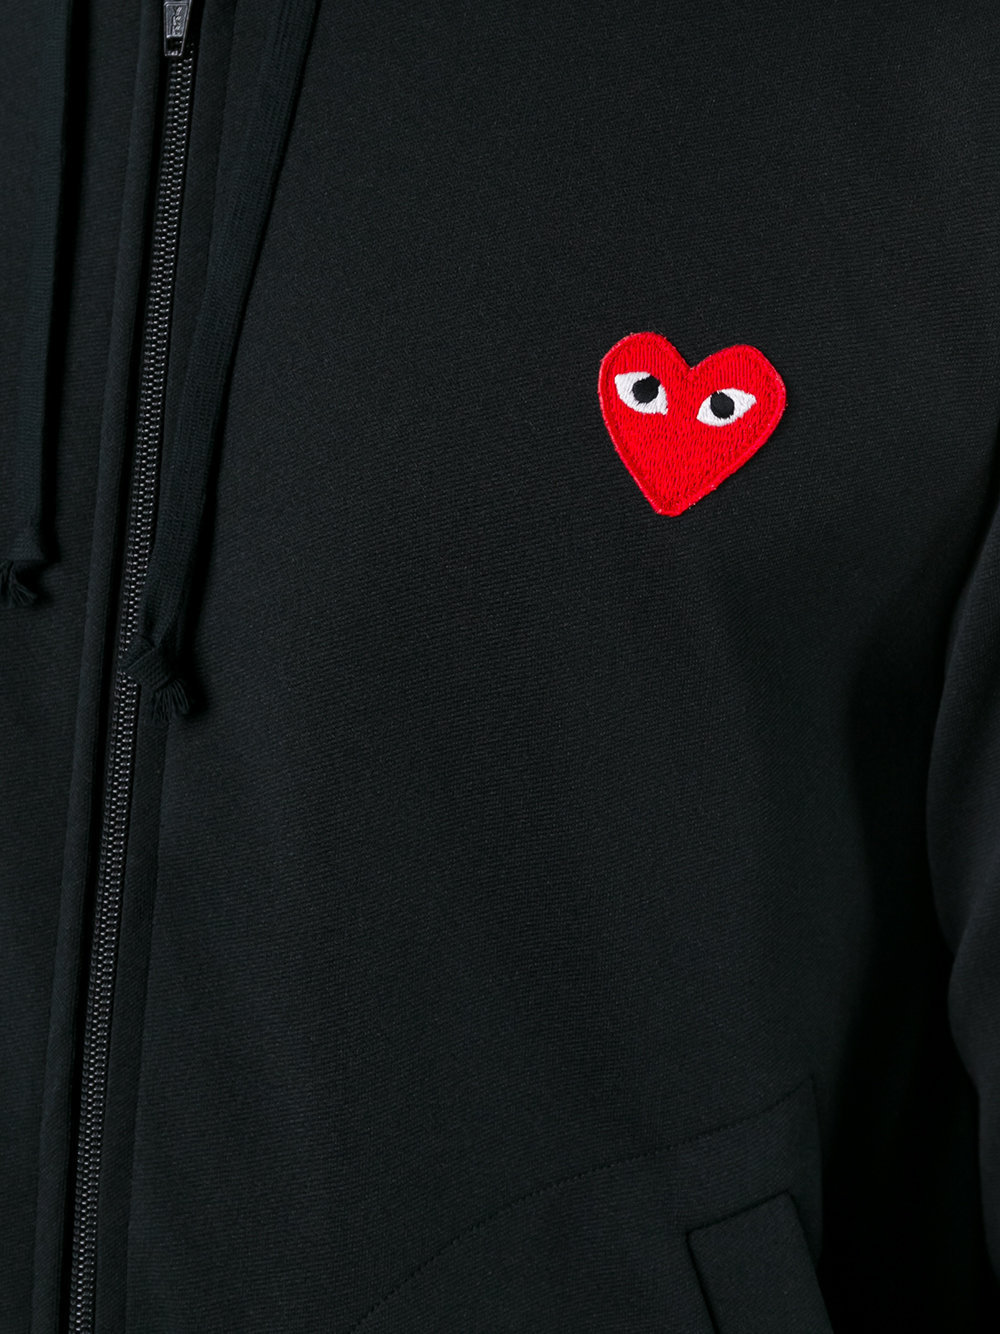 〇 Comme Des Garcons Play  ハートロゴジップパーカー